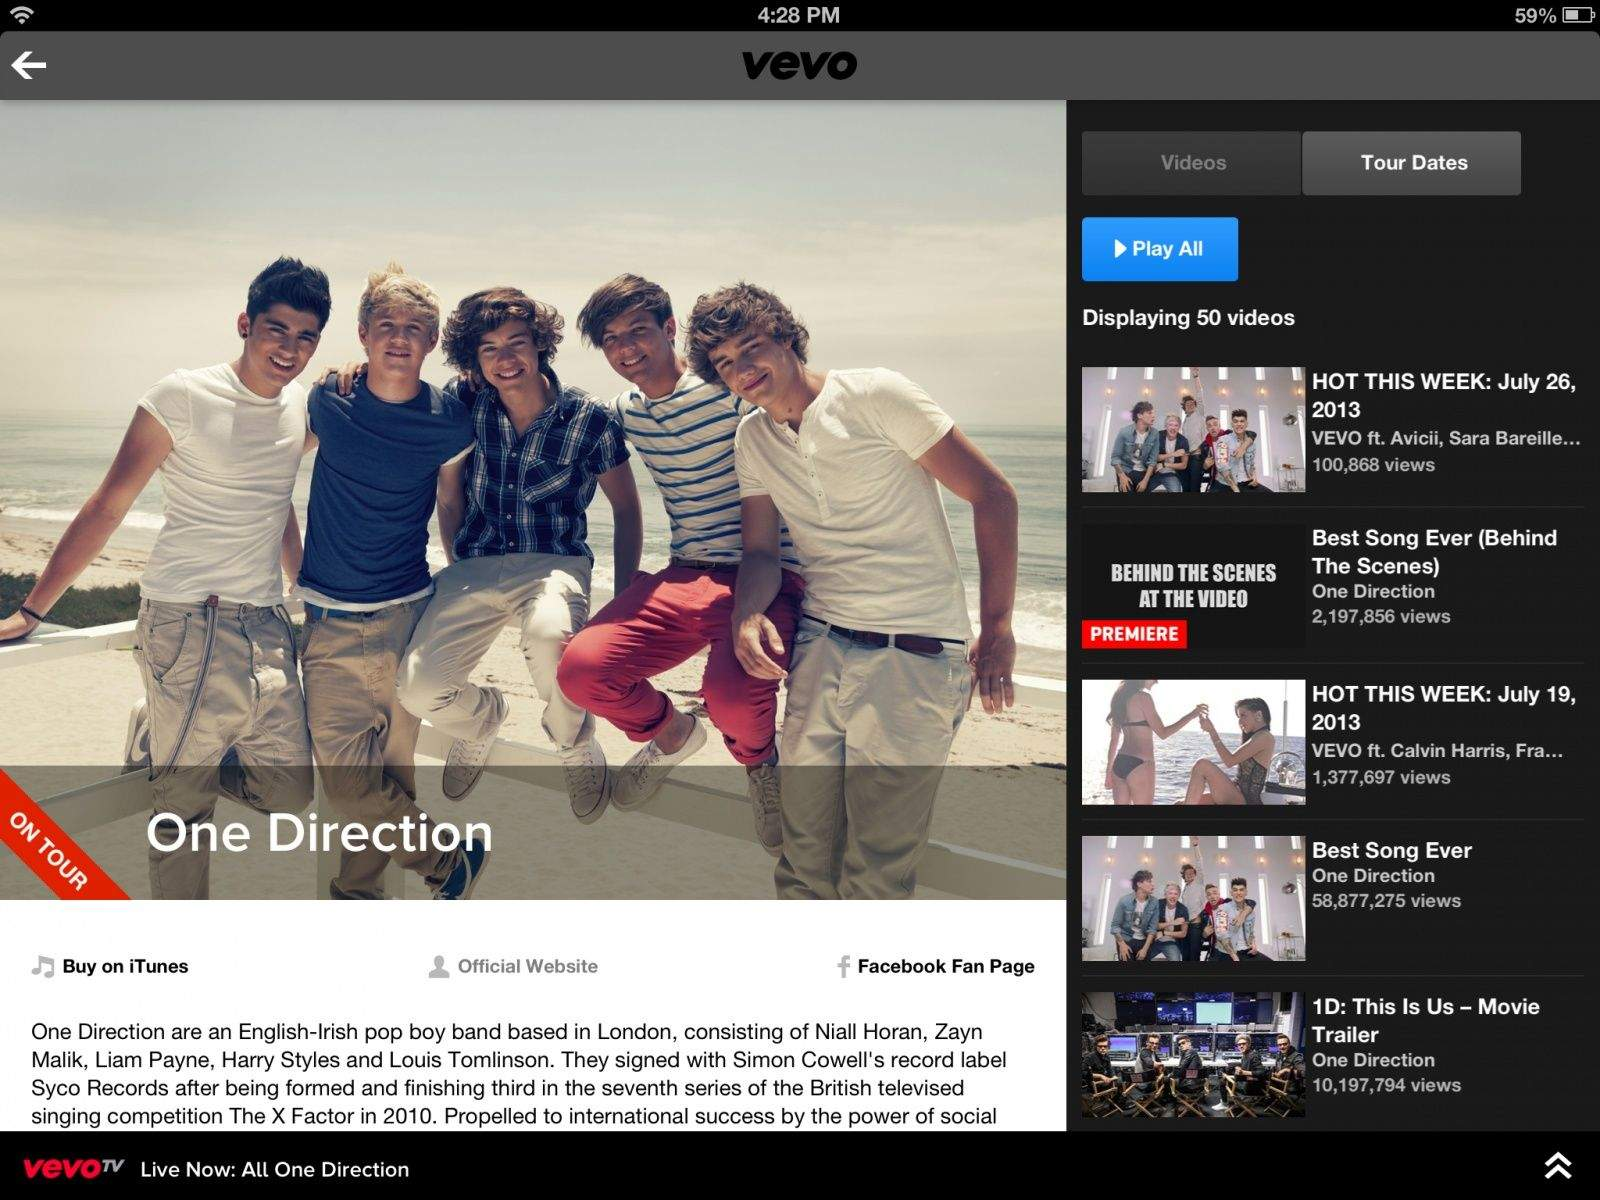 Ready to get your One Direction fix on the Apple TV?